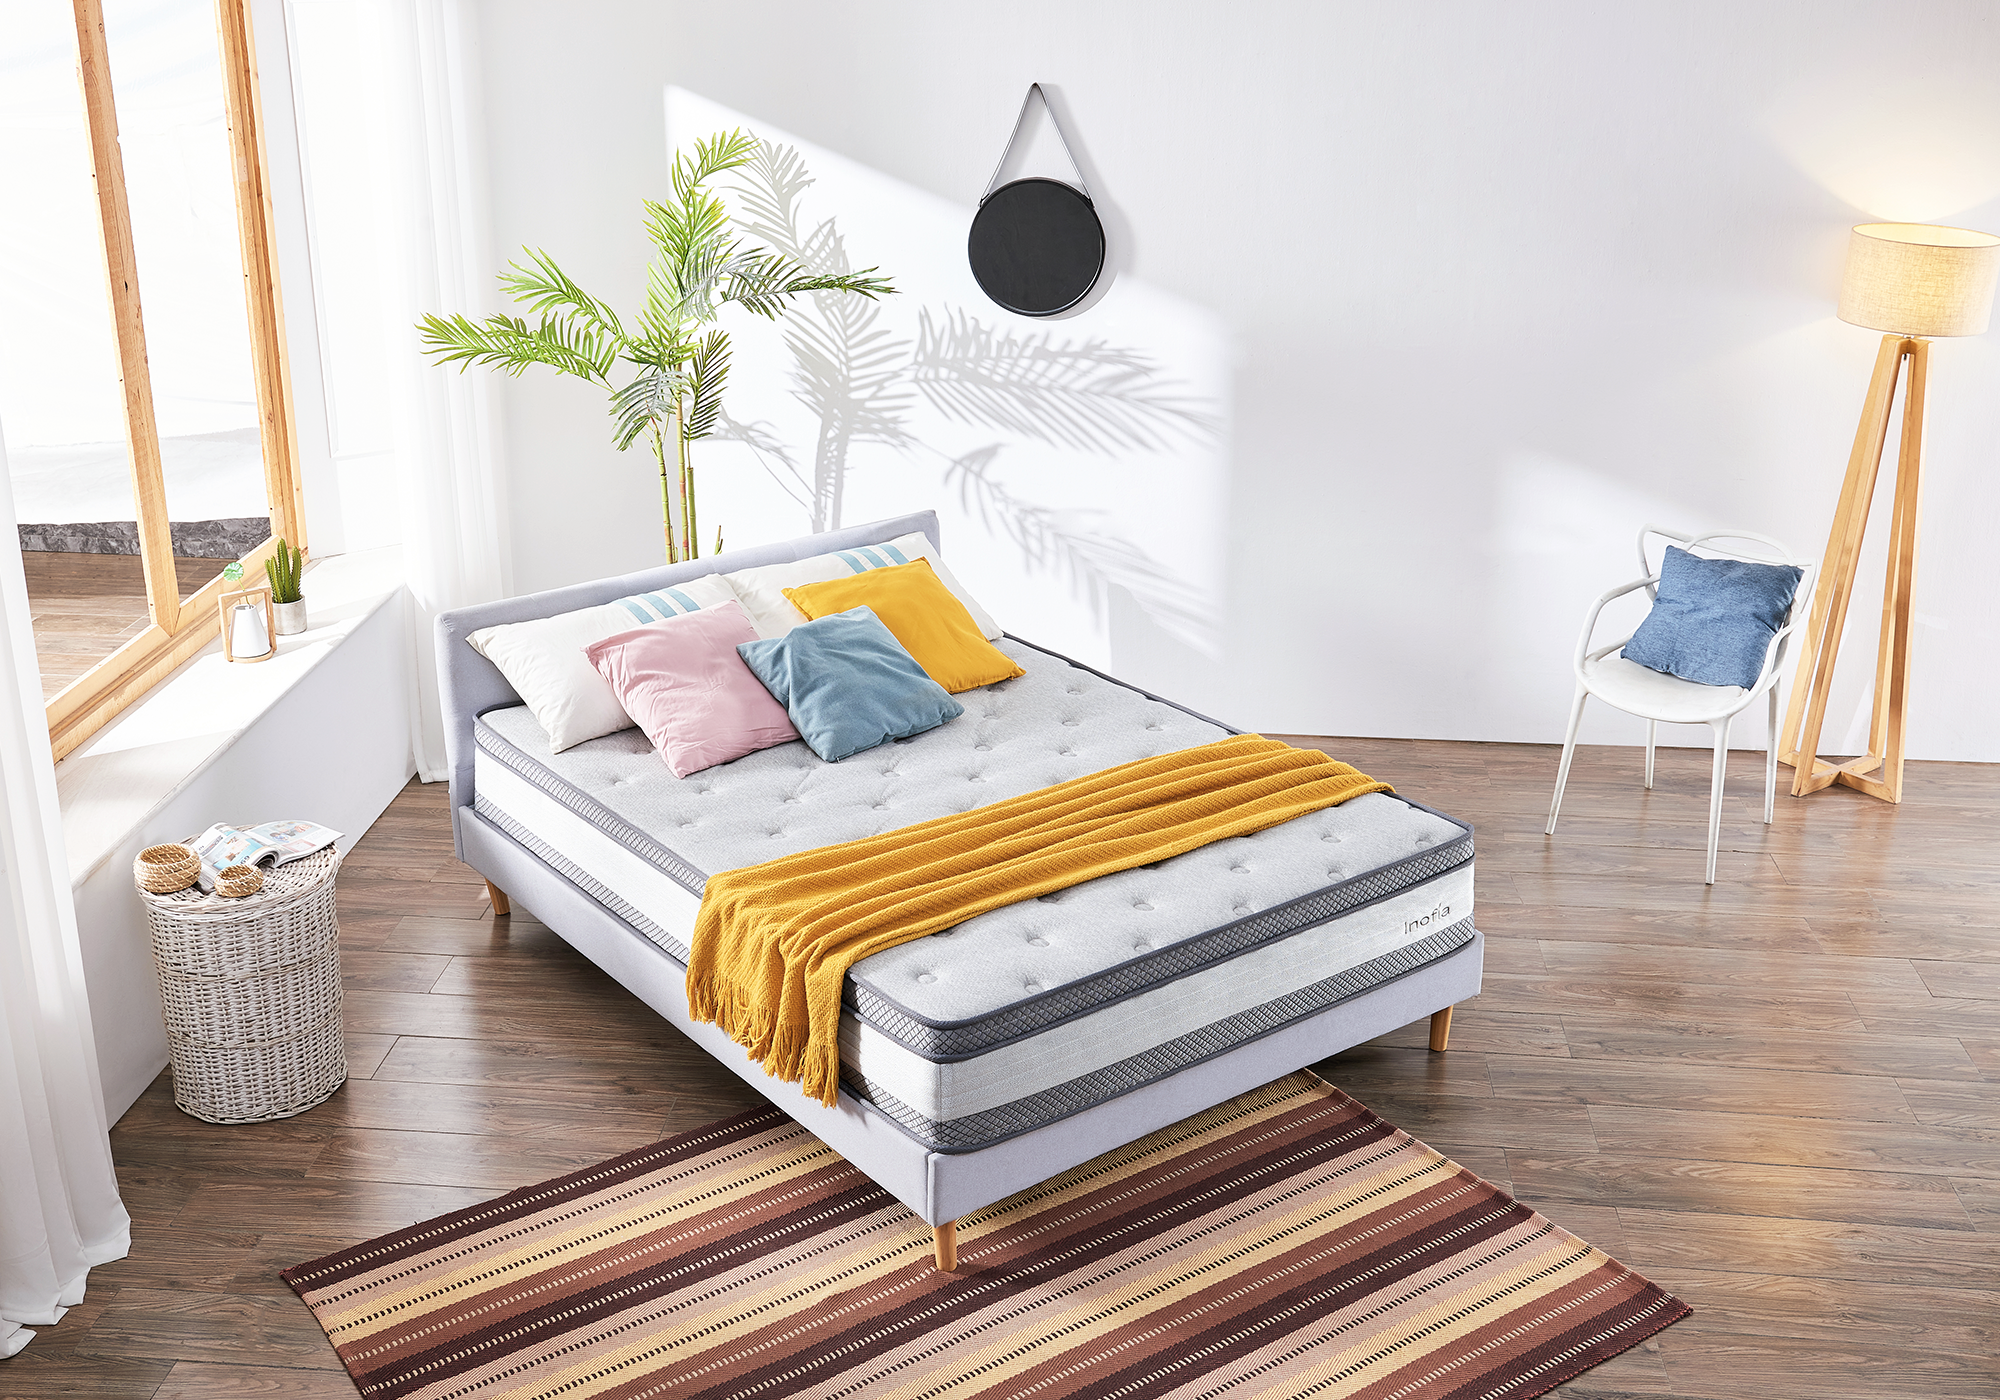 Inofia King Mattress with Air Buffer Spring, Tuft Expertly Handcrafted Mattress.